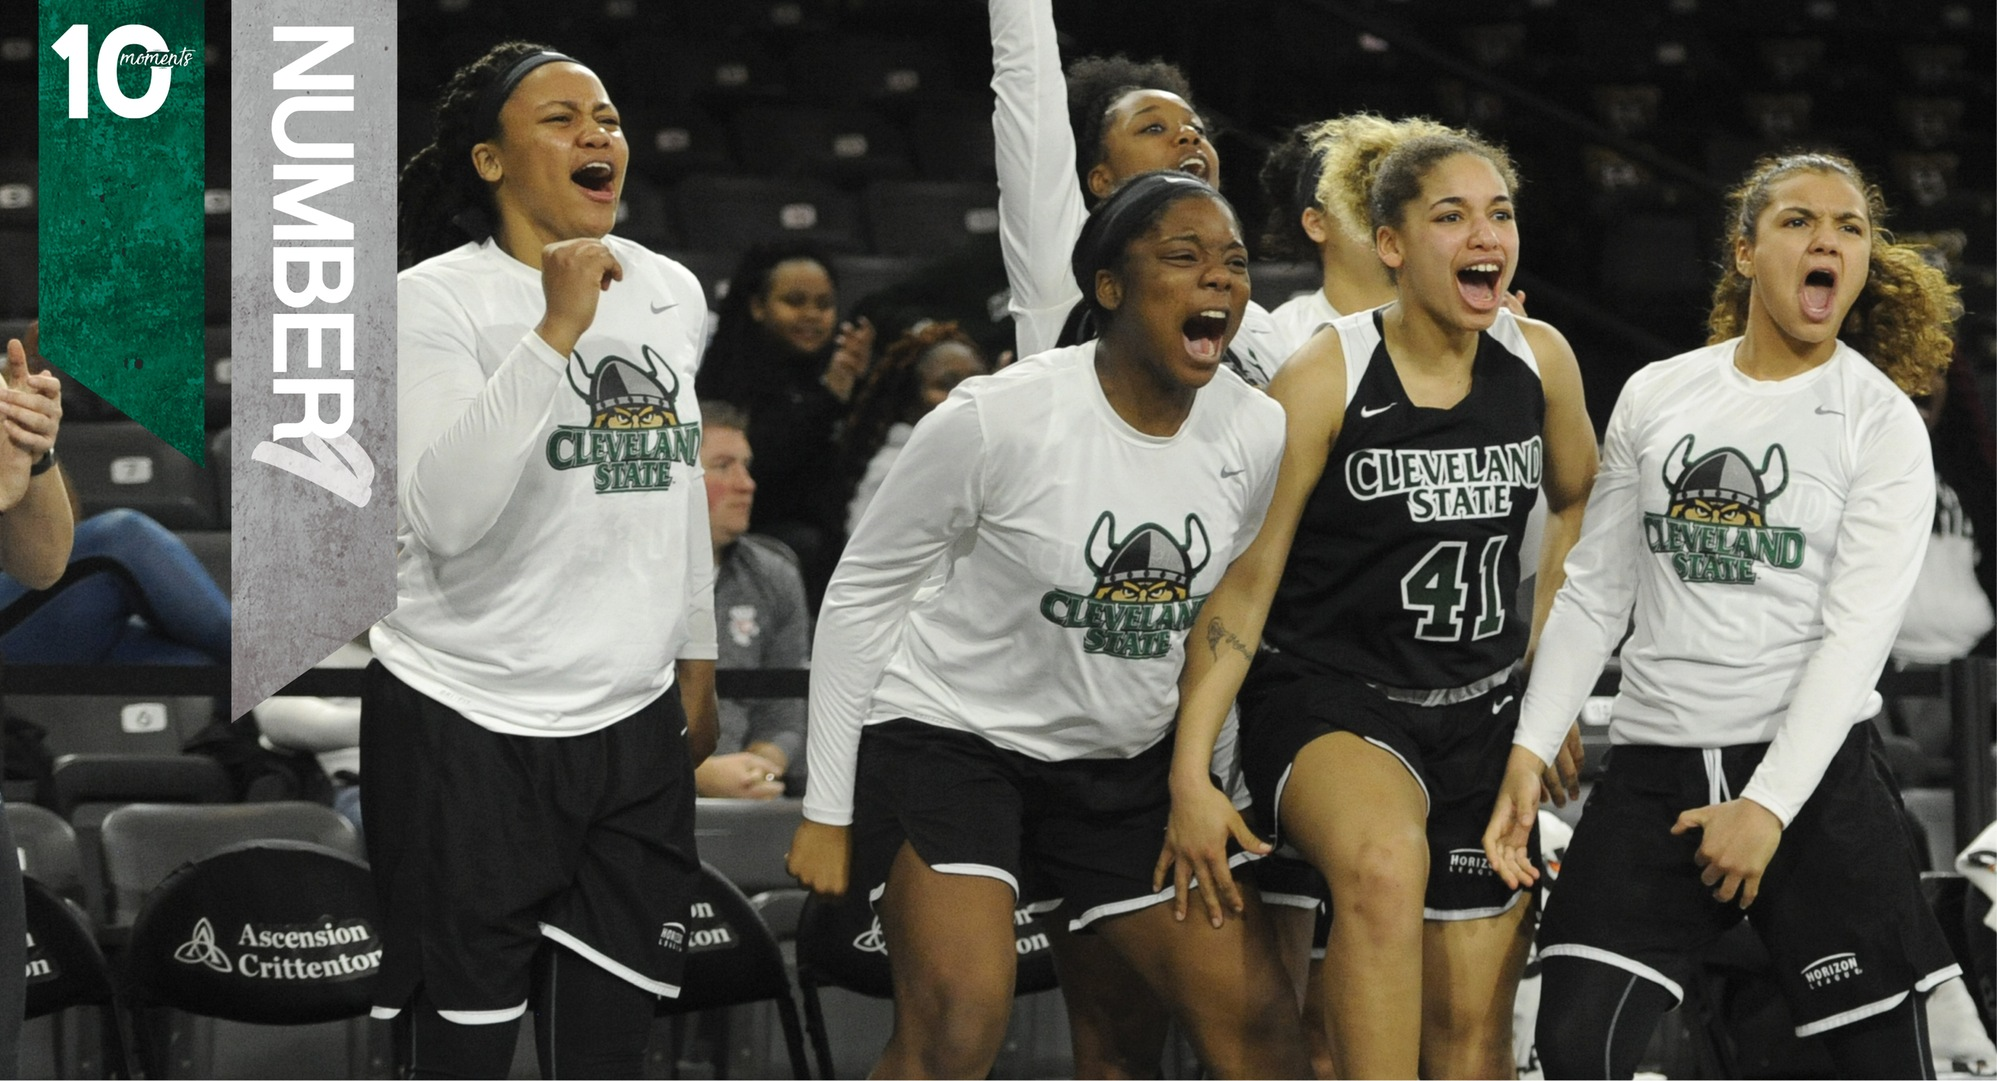 2017-18 CSU Athletics Top 10 Moments | #9 - Women's Basketball Defeats Nationally-Ranked Green Bay